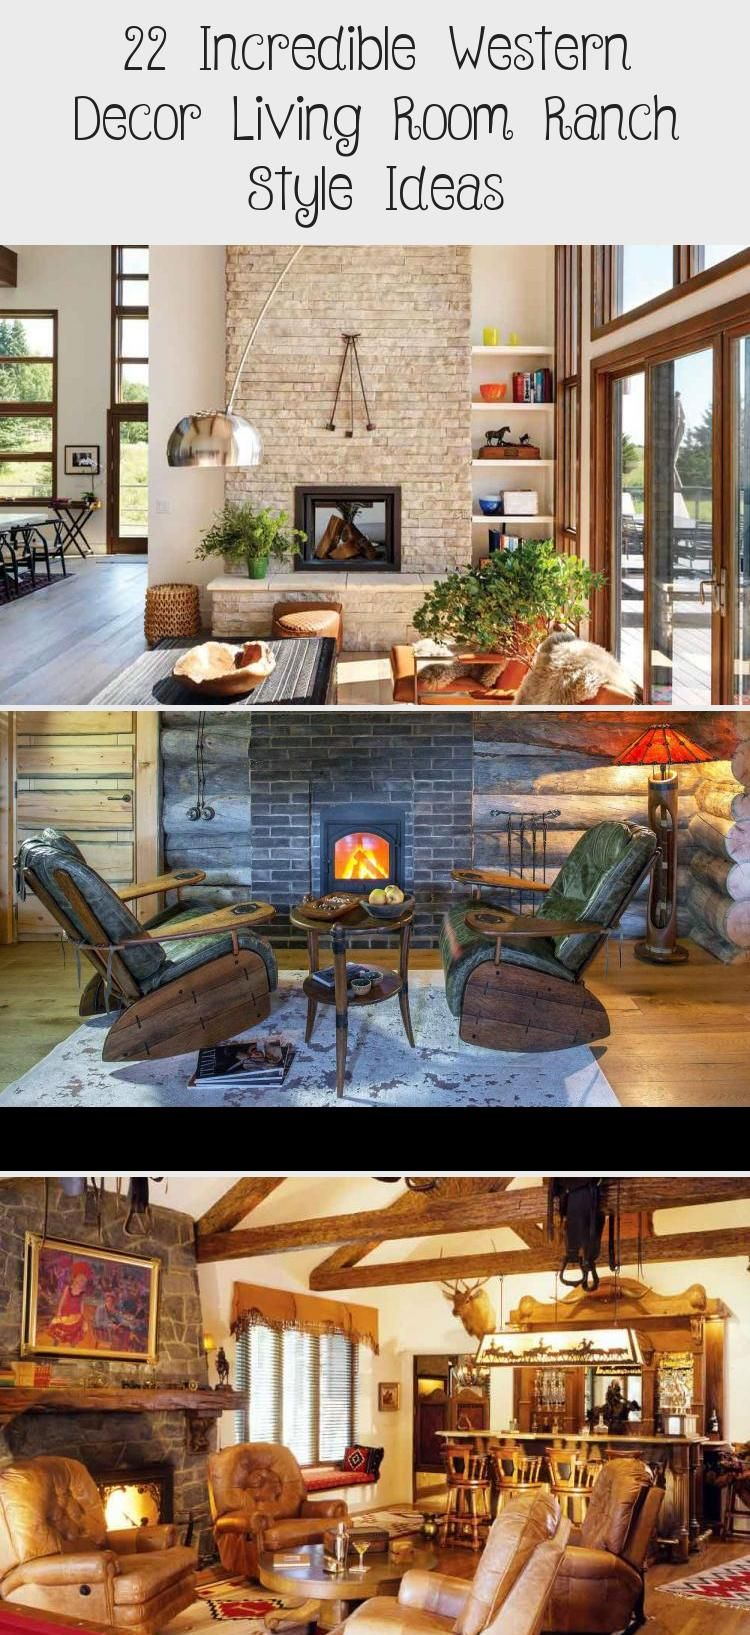 Nice Western Decor Living Room Ranch Style 21 Western Decor Living Room Ranch Style For Offices Are Getting To Be In 2020 Western Decor Living Decor Living Room Decor #western #theme #living #room